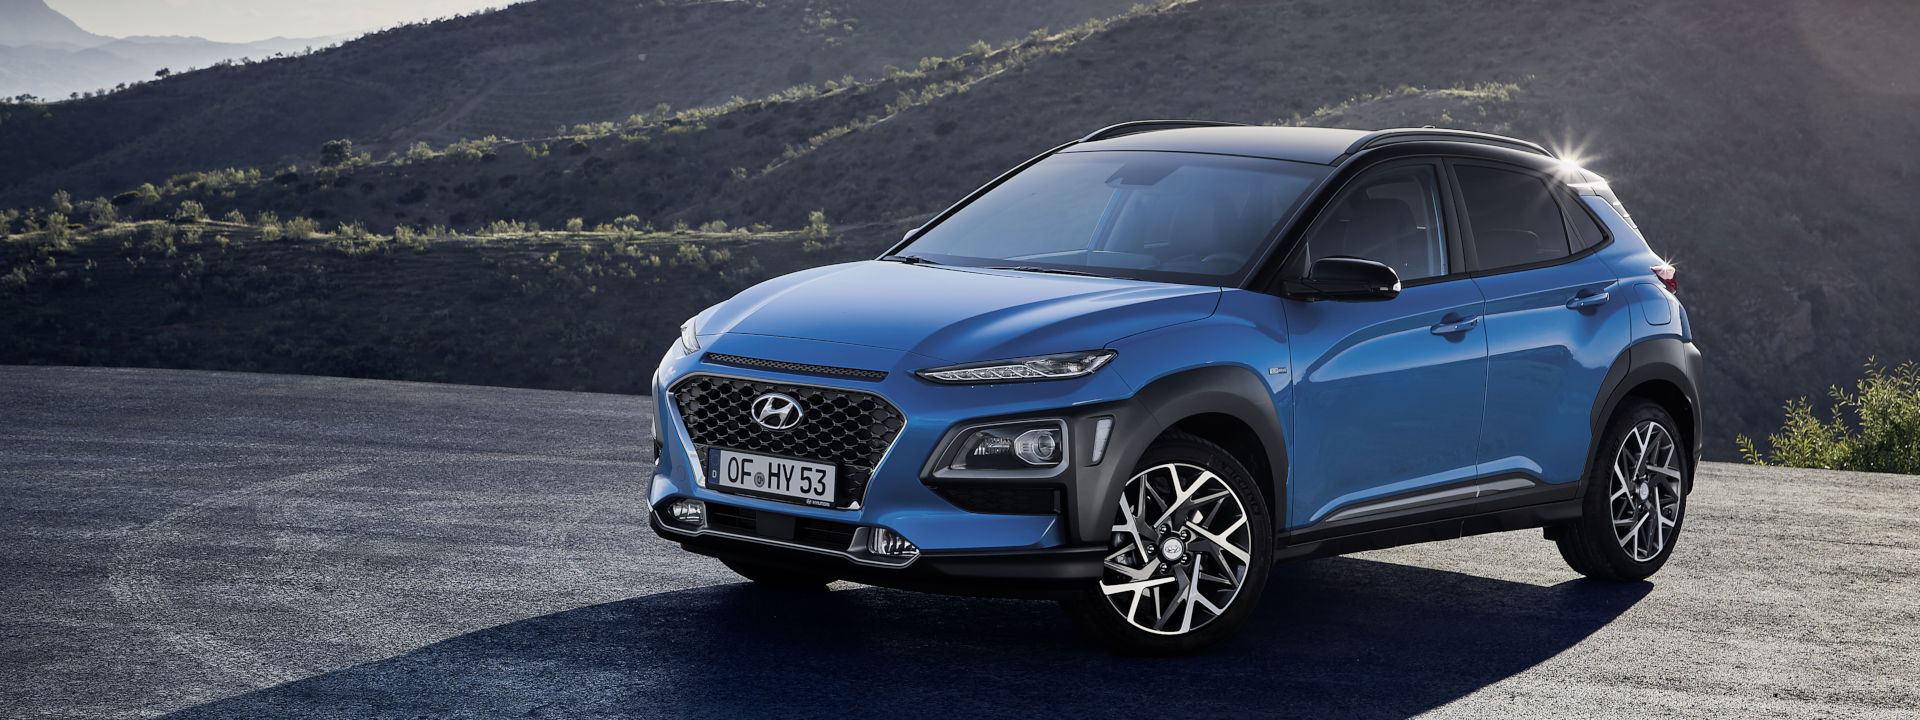 All-New Hyundai Kona Hybrid: Even more to offer European customers